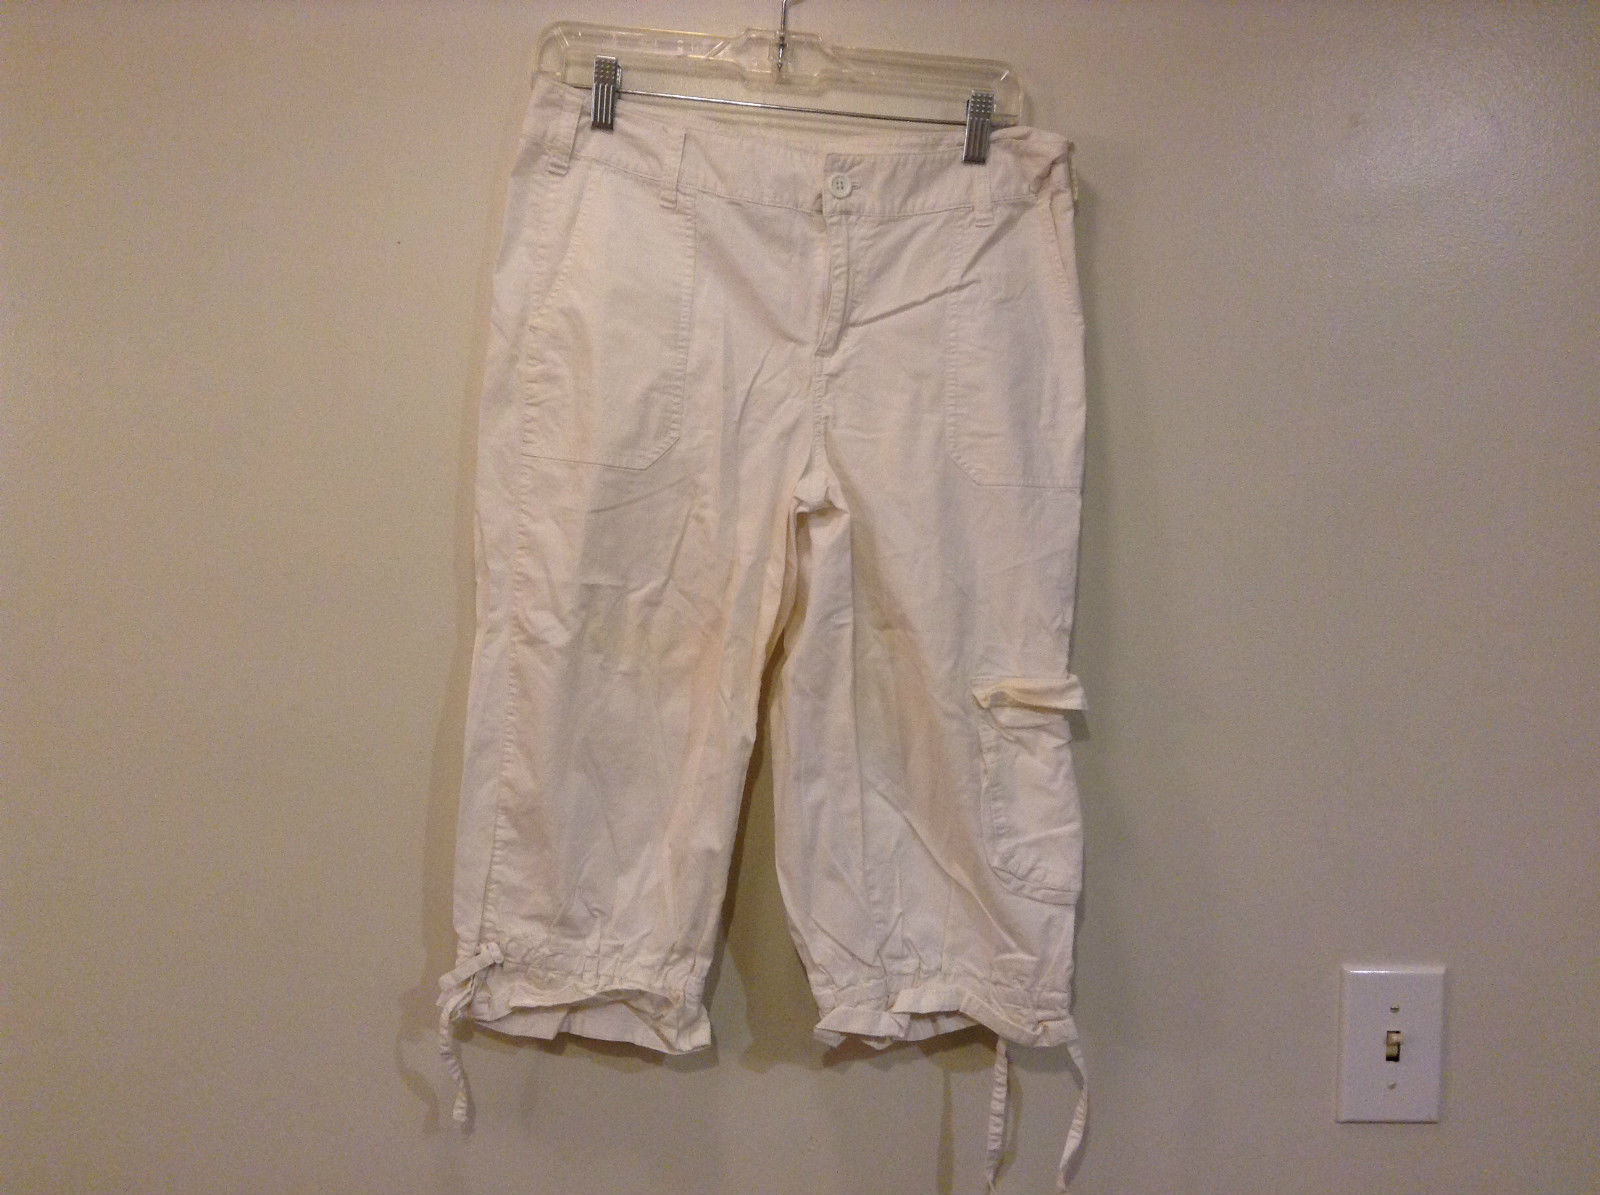 Ana A New Approach White Casual Capri Pants Size 10 Petite Button Zipper Closure